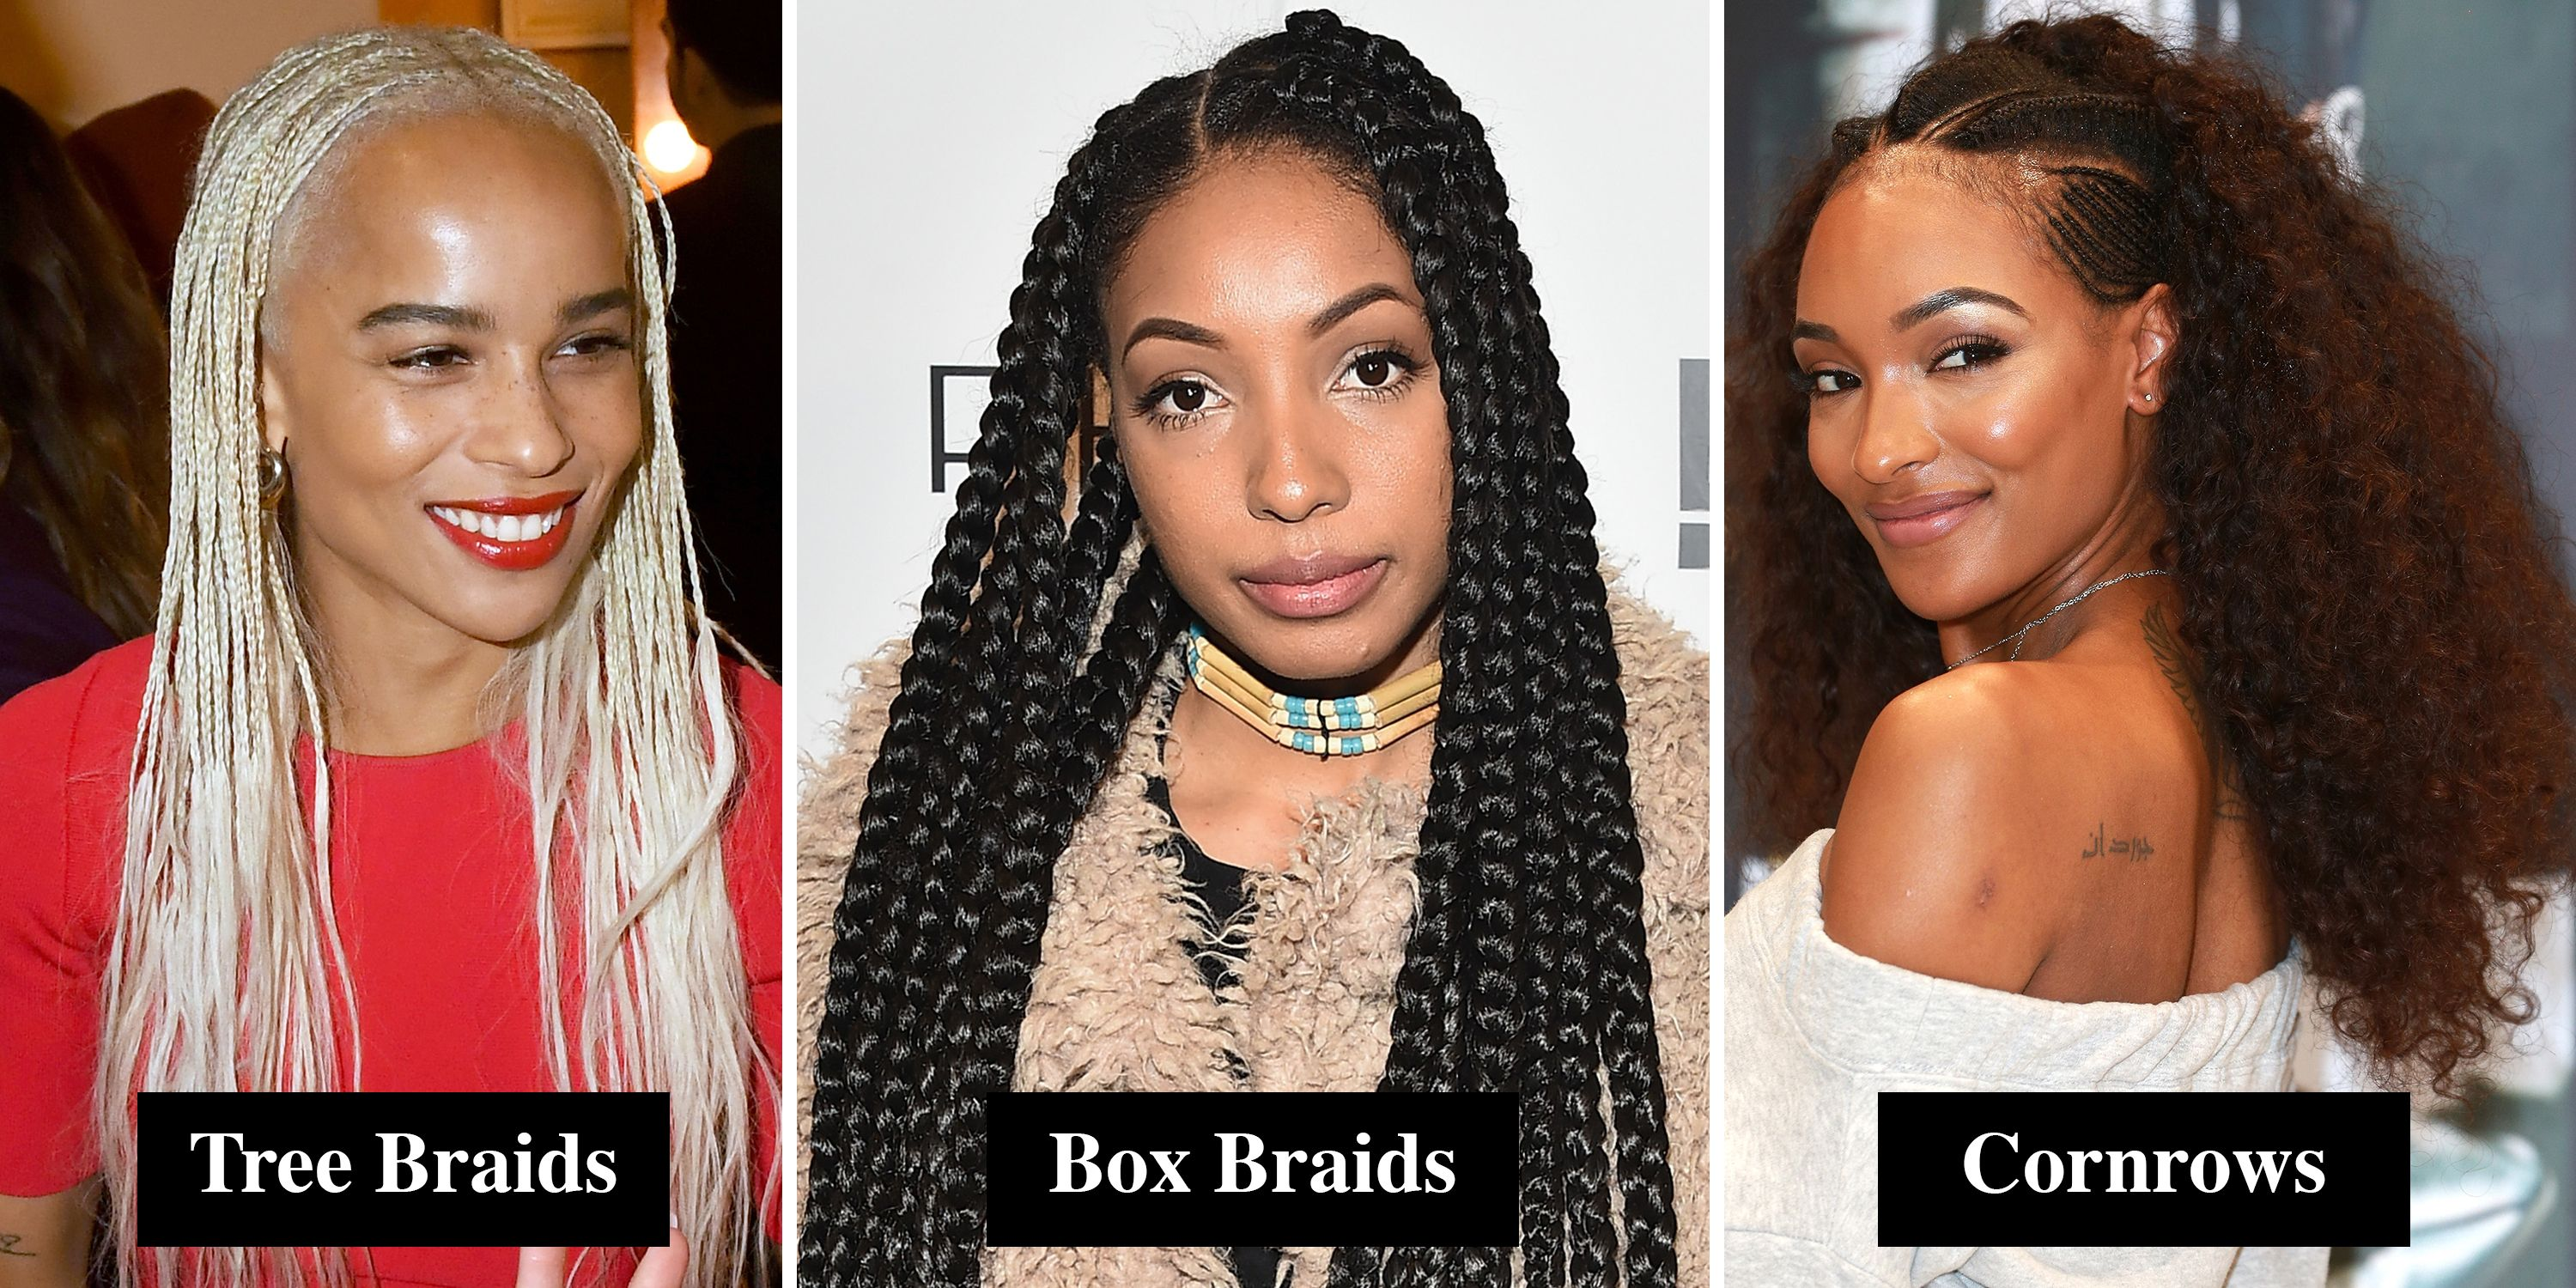 Braids and Twists for Afro and Black Hair